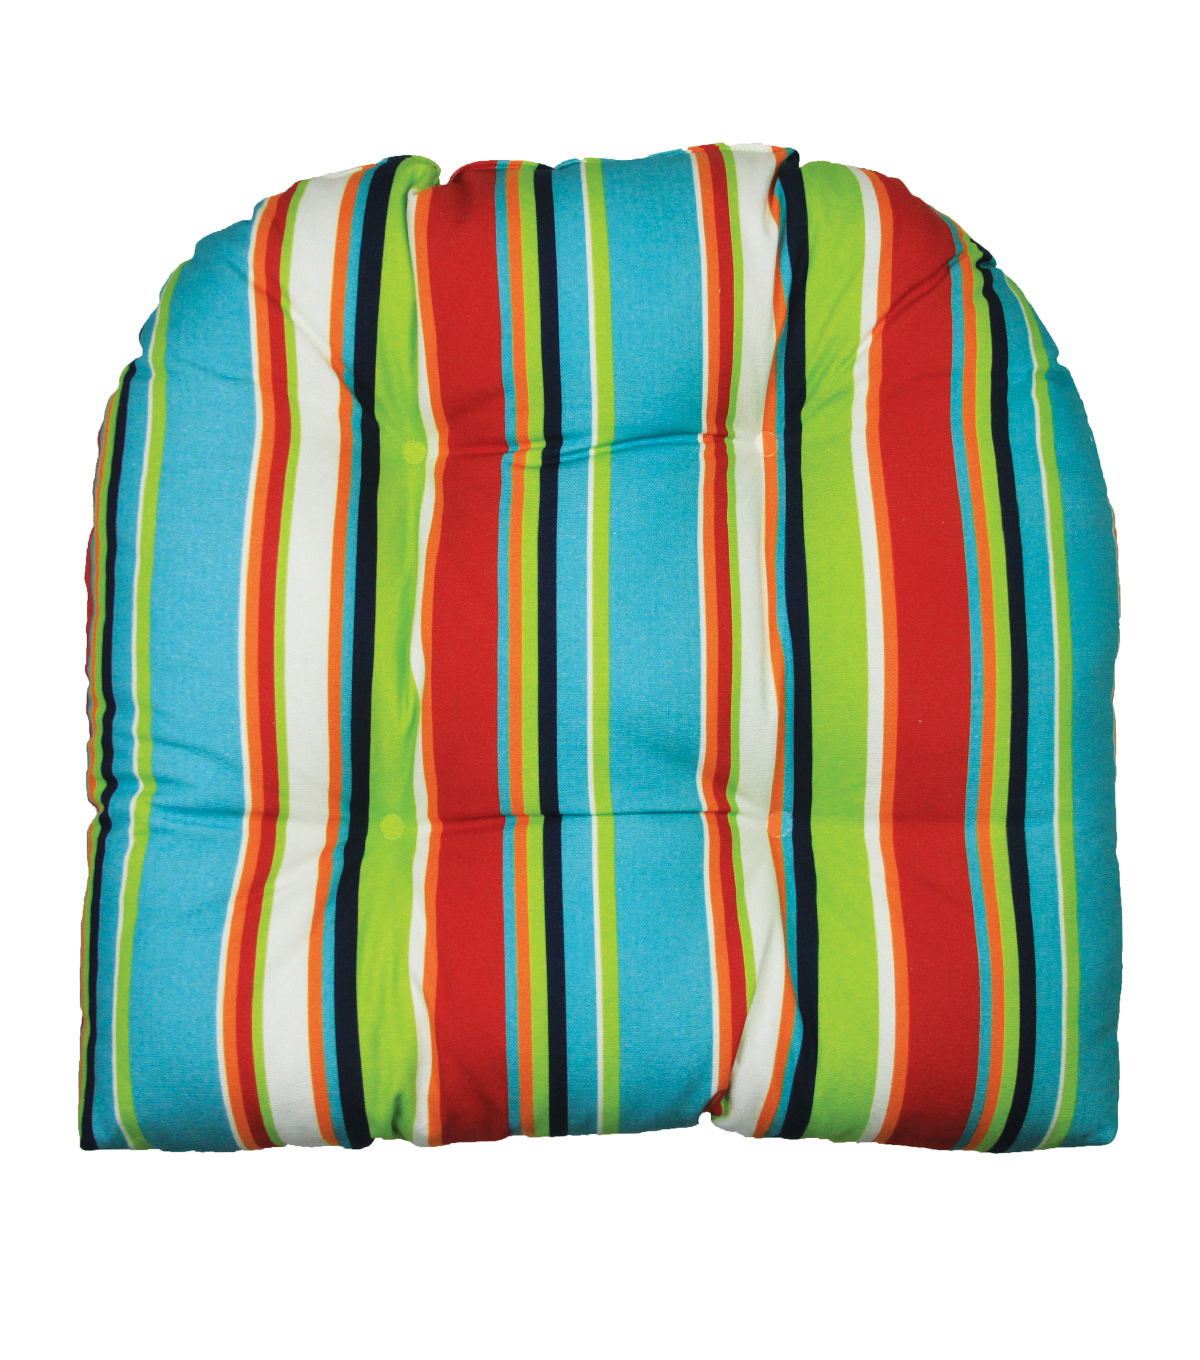 Summer Sol Outdoor Cushion-Island Stripes